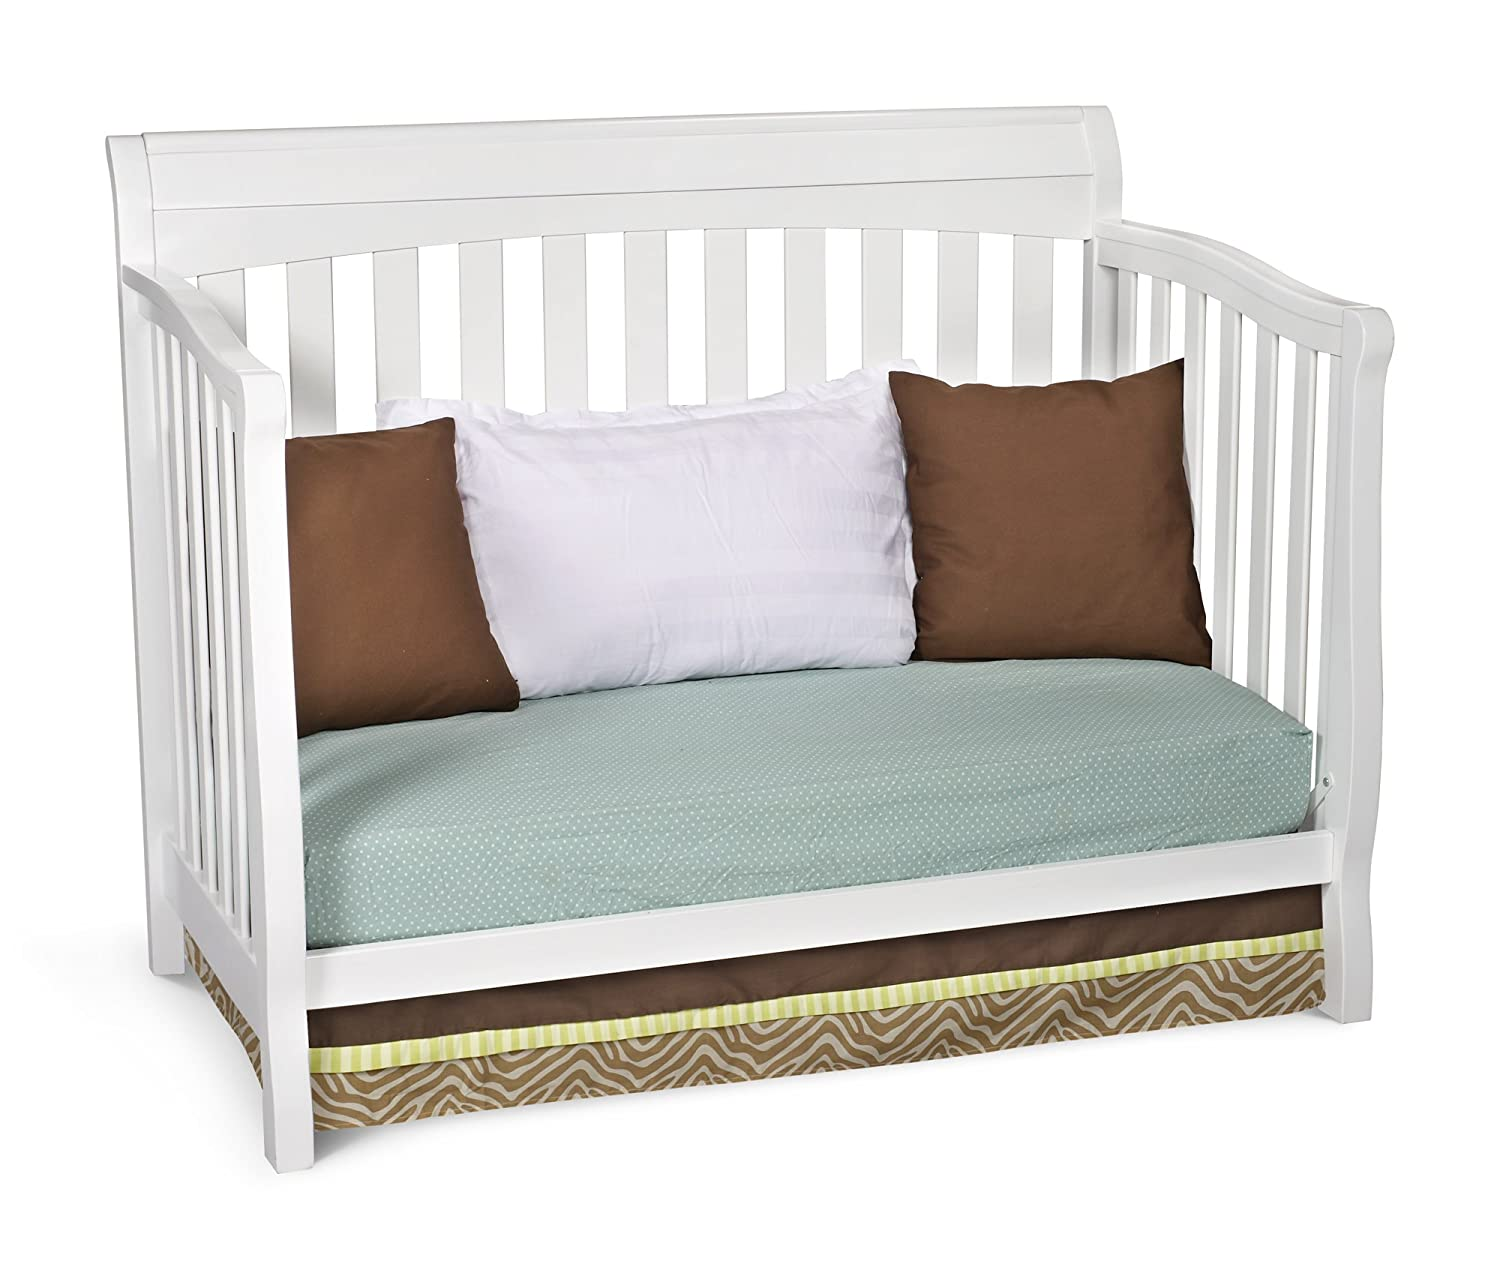 Delta Children Eclipse 4-in-1 Convertible Baby Crib, White